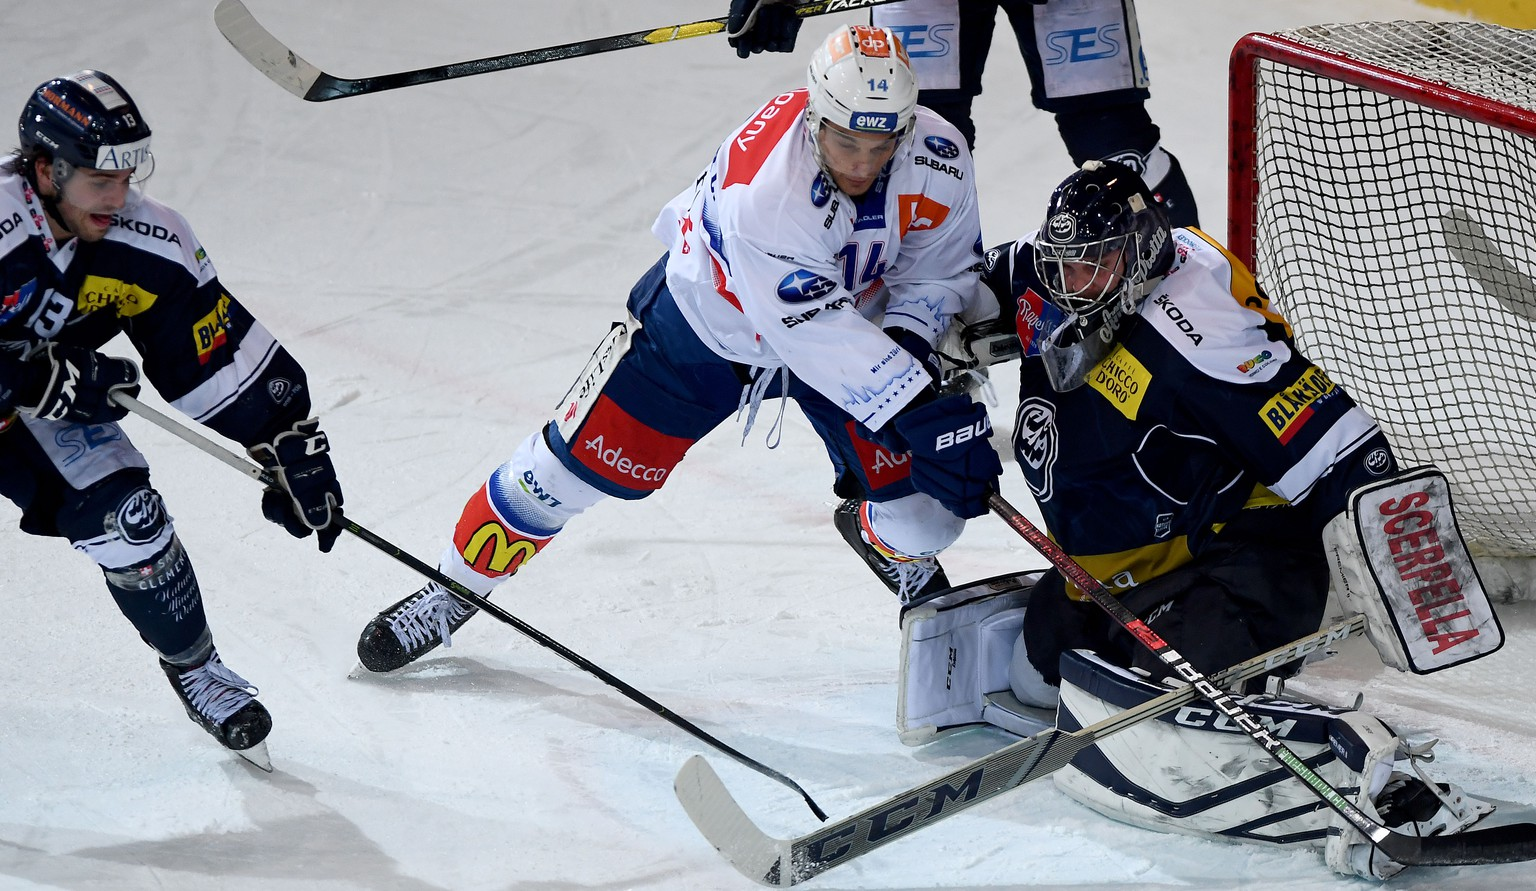 From left  Ambri's player Marco Müller, Zsc'player Chris Baltisberger and Ambri's goalkeeper Benjamin Conz, during the preliminary round game of National League A (NLA) Swiss Championship 2018/19 between HC Ambri Piotta and ZSC Lions, at the ice Stadium Valascia in Ambri, Switzerland, Saturday, January 26, 2019. (KEYSTONE/Ti-Press/Samuel Golay)